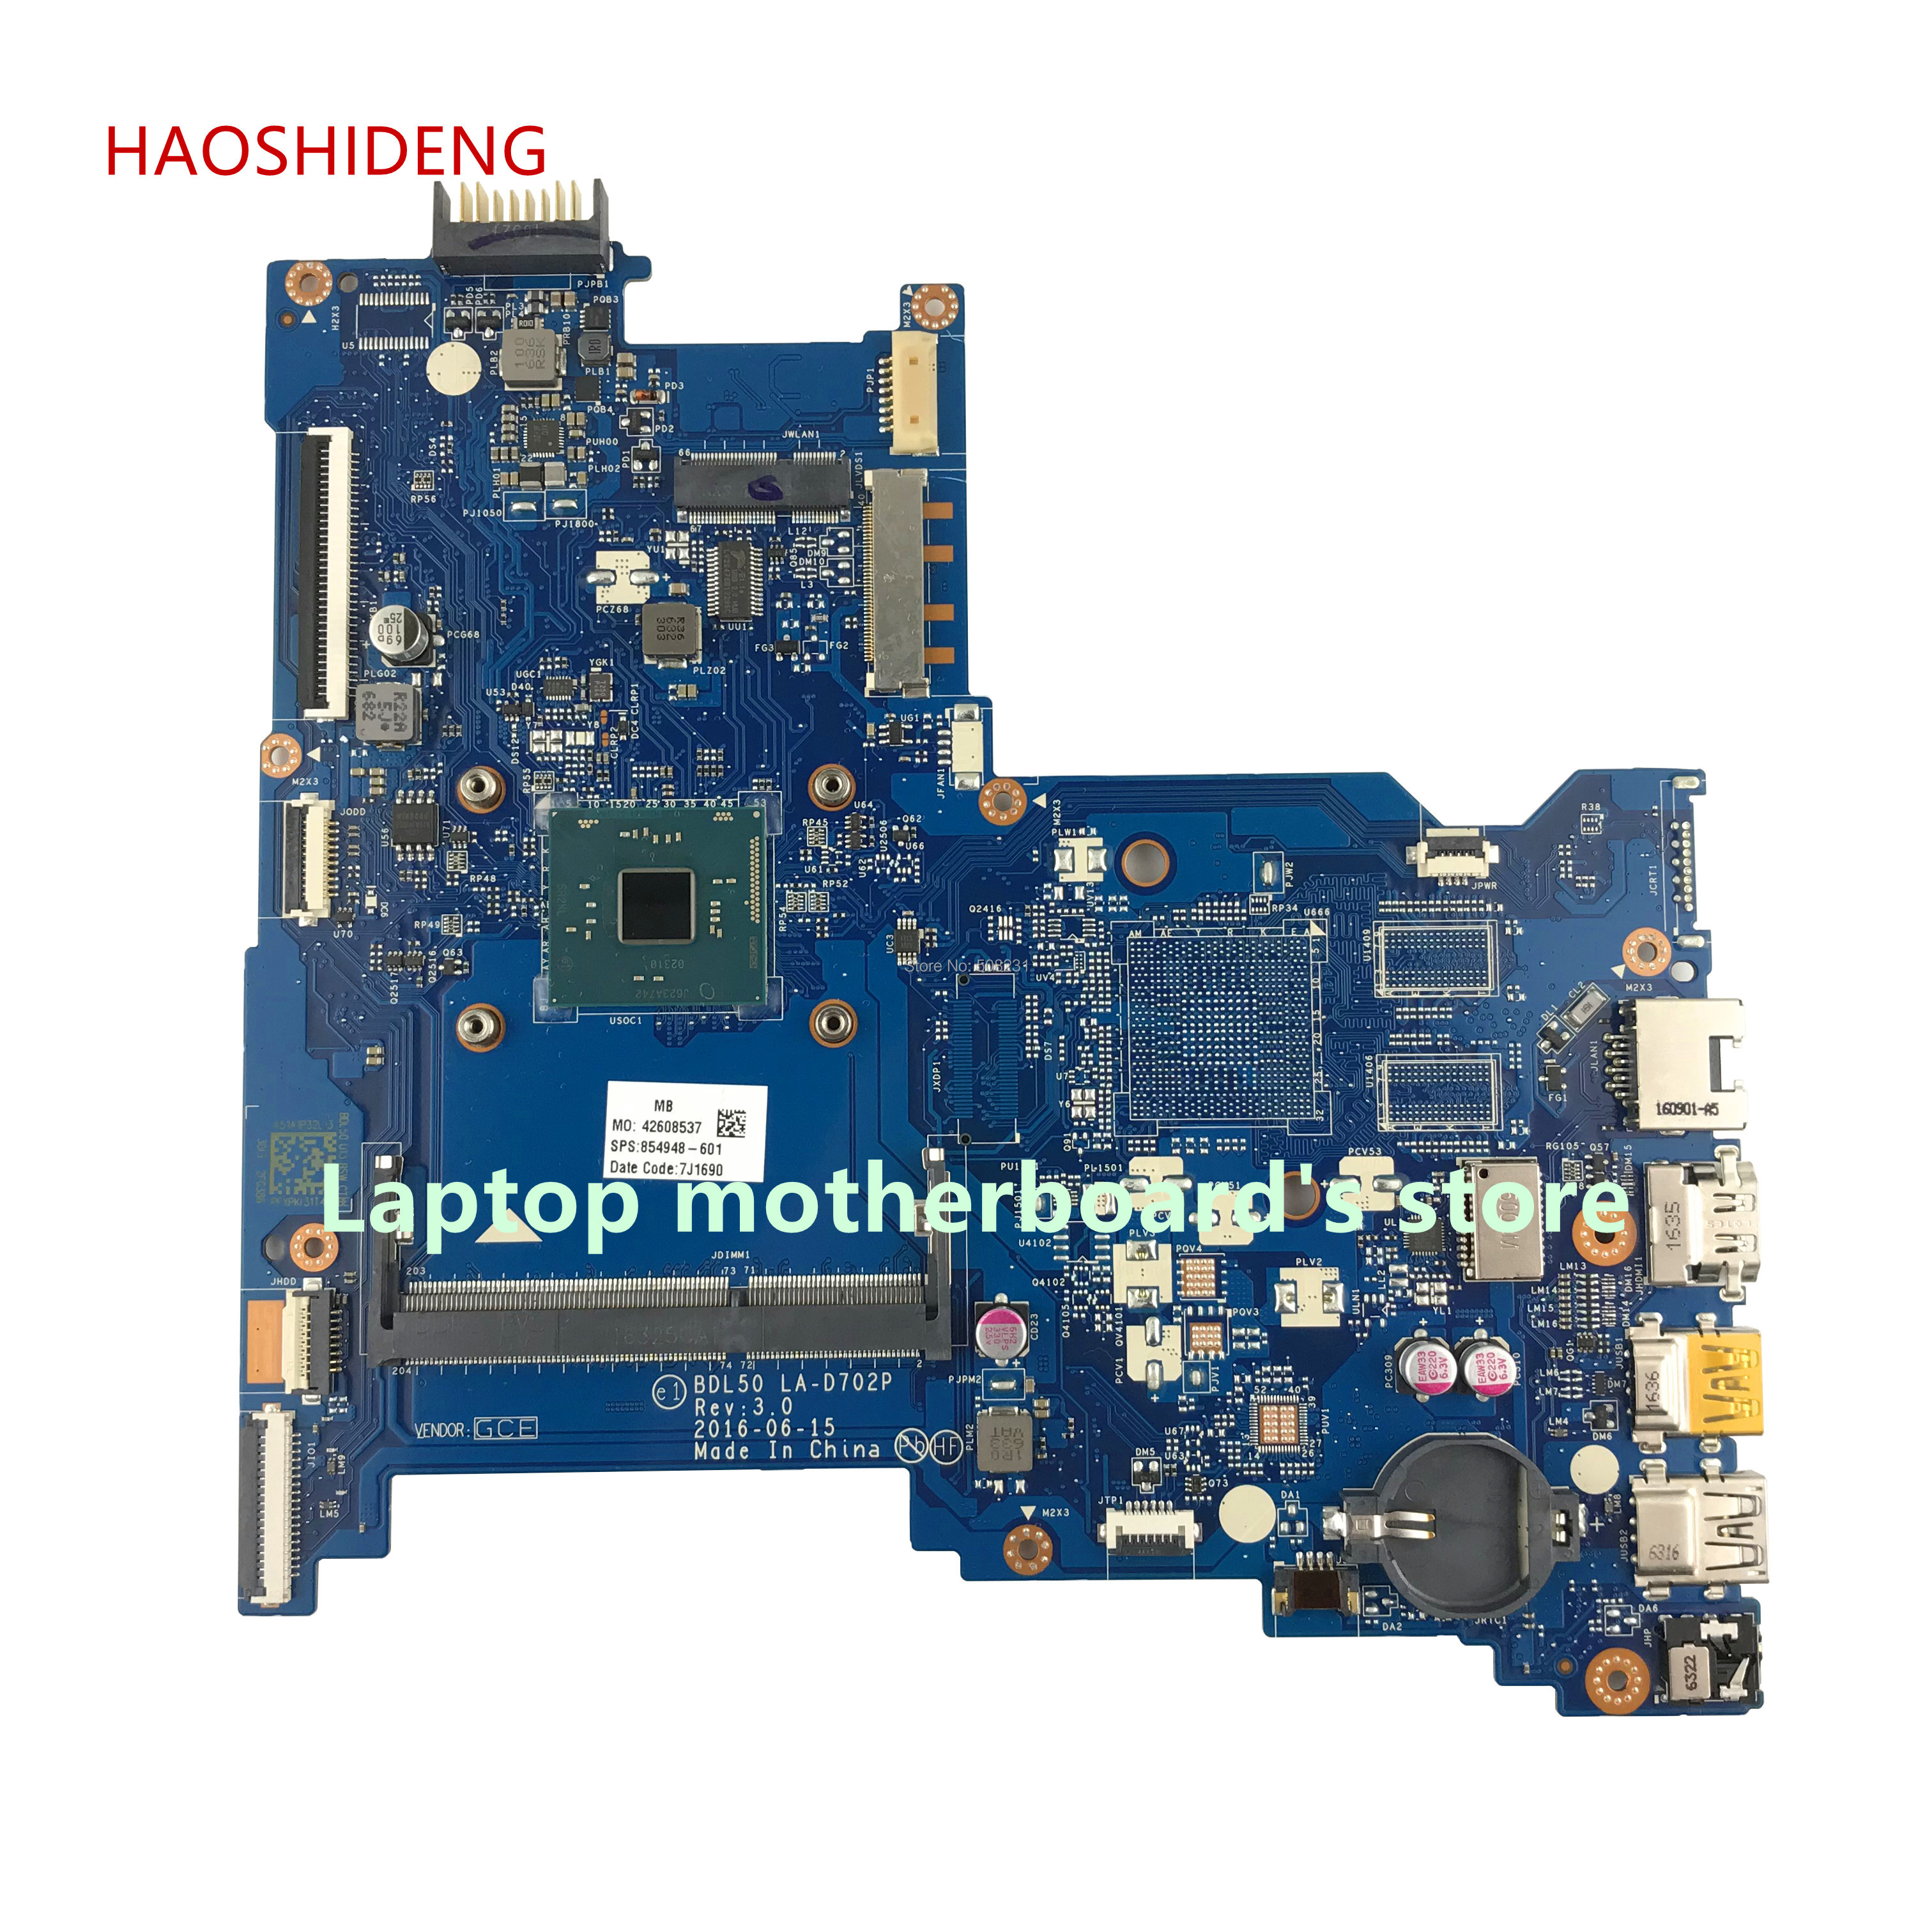 HAOSHIDENG 854948-601 854948-501 BDL50 LA-D702P mainboard for HP NOTEBOOK 15-AY 15-AY006CY laptop motherboard with N3710 free shipping 854949 601 bdl50 la d702p for hp notebook 15 ay series motherboard with n3160 cpu all functions 100